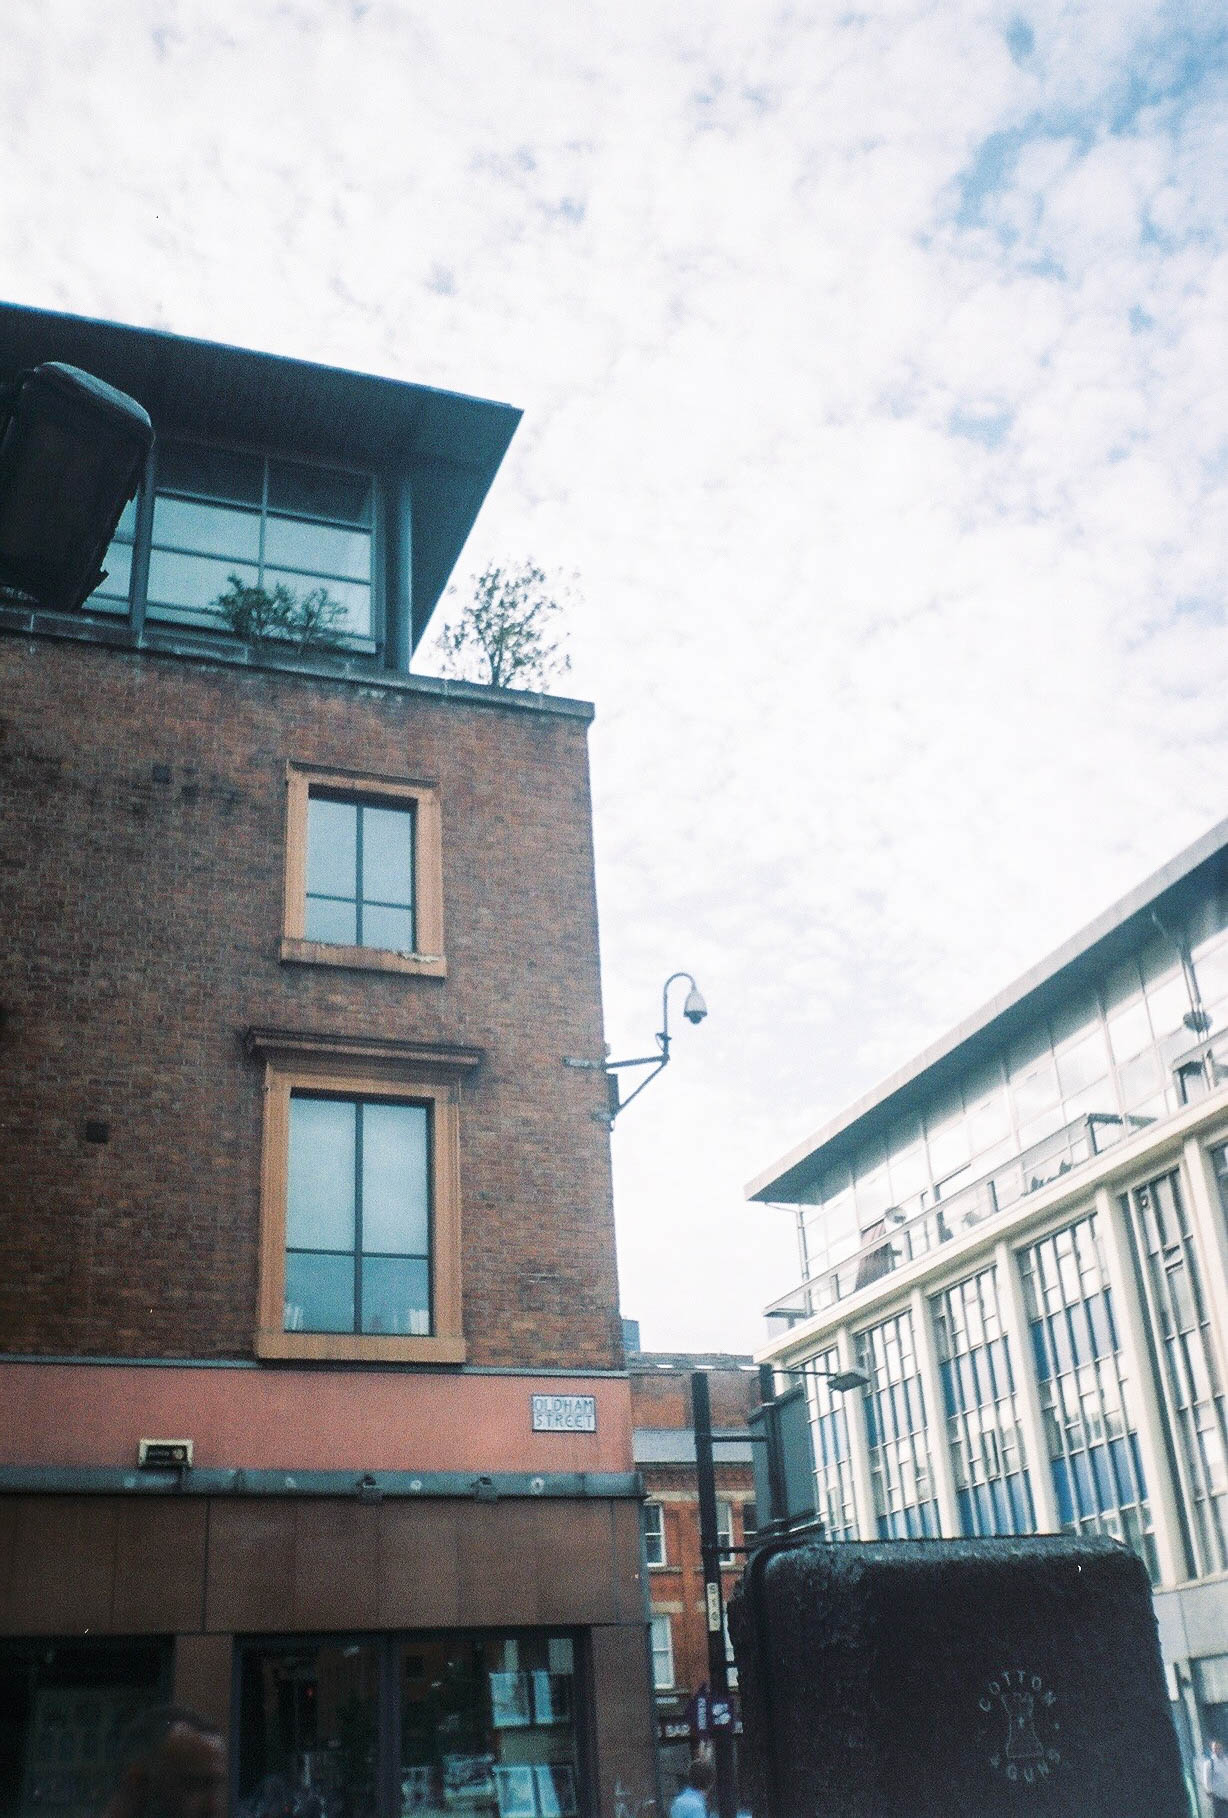 Manchester, Northern Quarter, MD3, Olympus Trip MD3, 35mm, Photo Diary, Photography Bloggers, Manchester, Bloggers, Derbyshire, East Midlands, North West, Katiewrites, katiebwrites, ©Katiewrites.co.uk